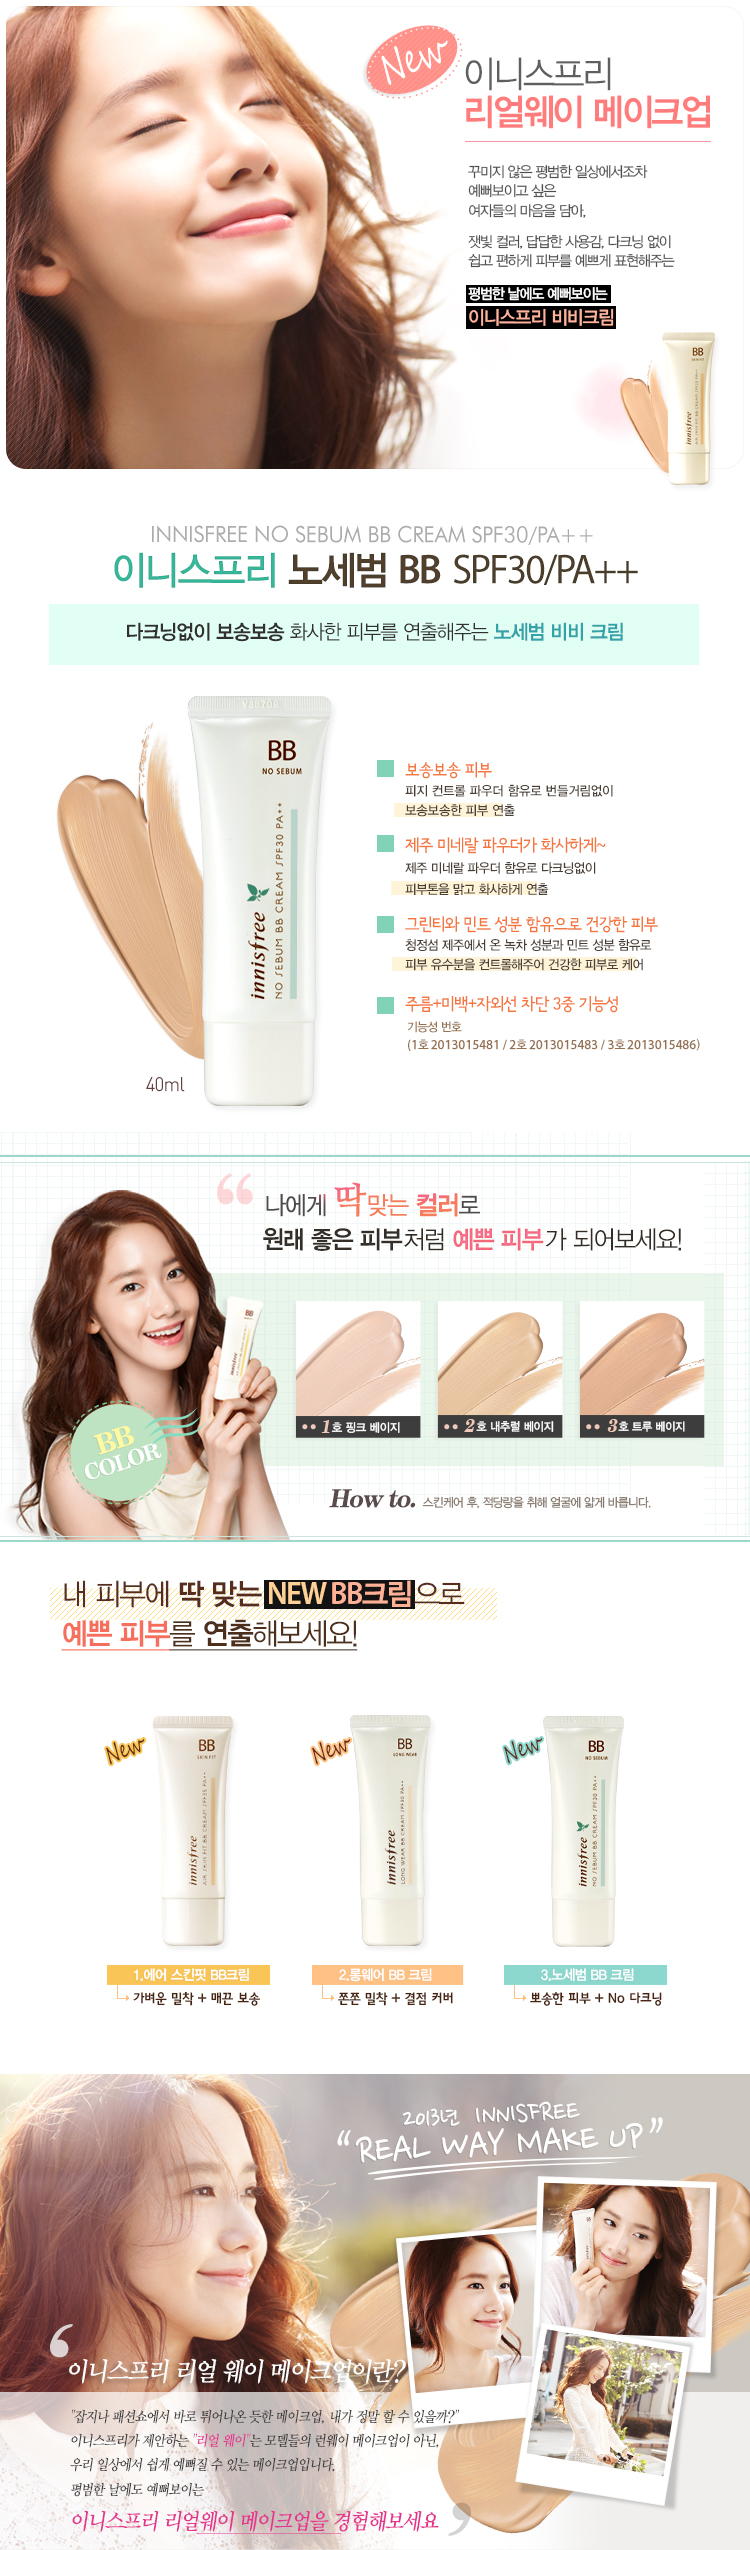 Innisfree (BB) Long Wear BB cream